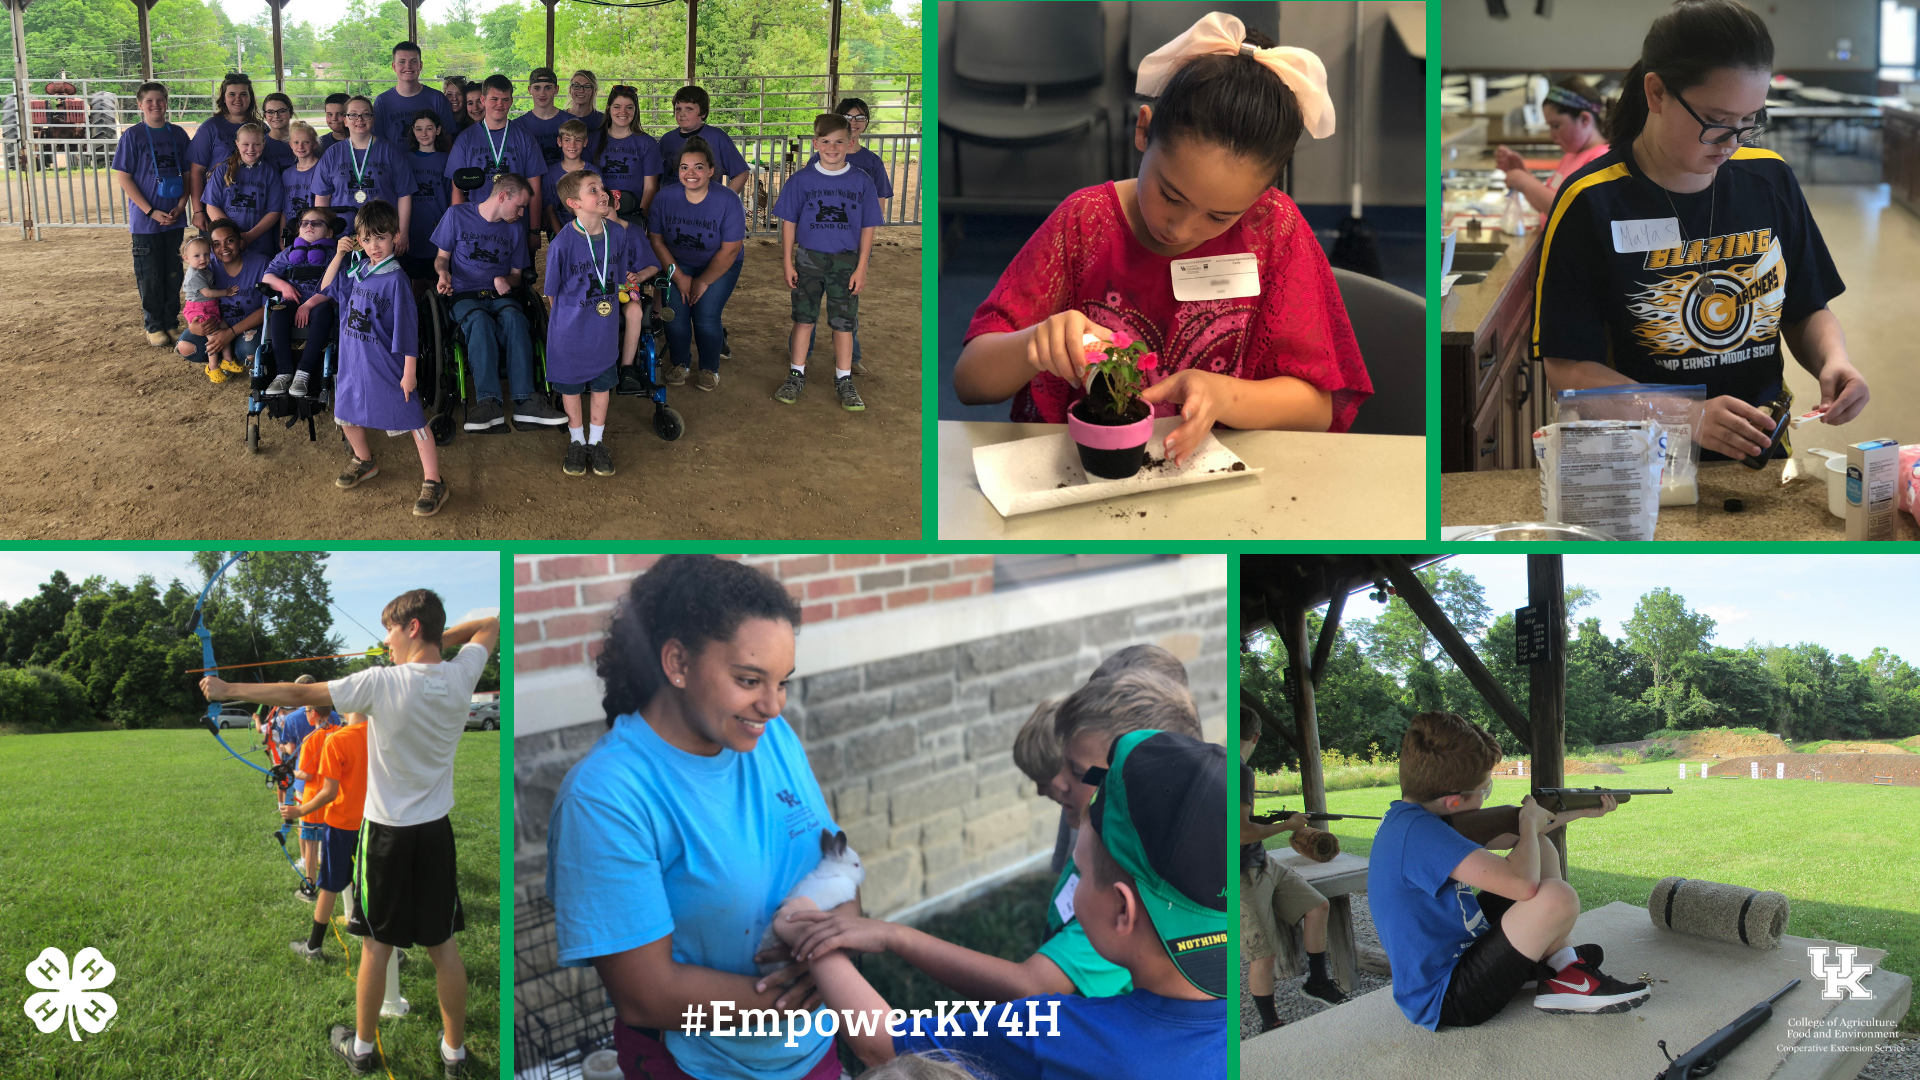 4-H collage